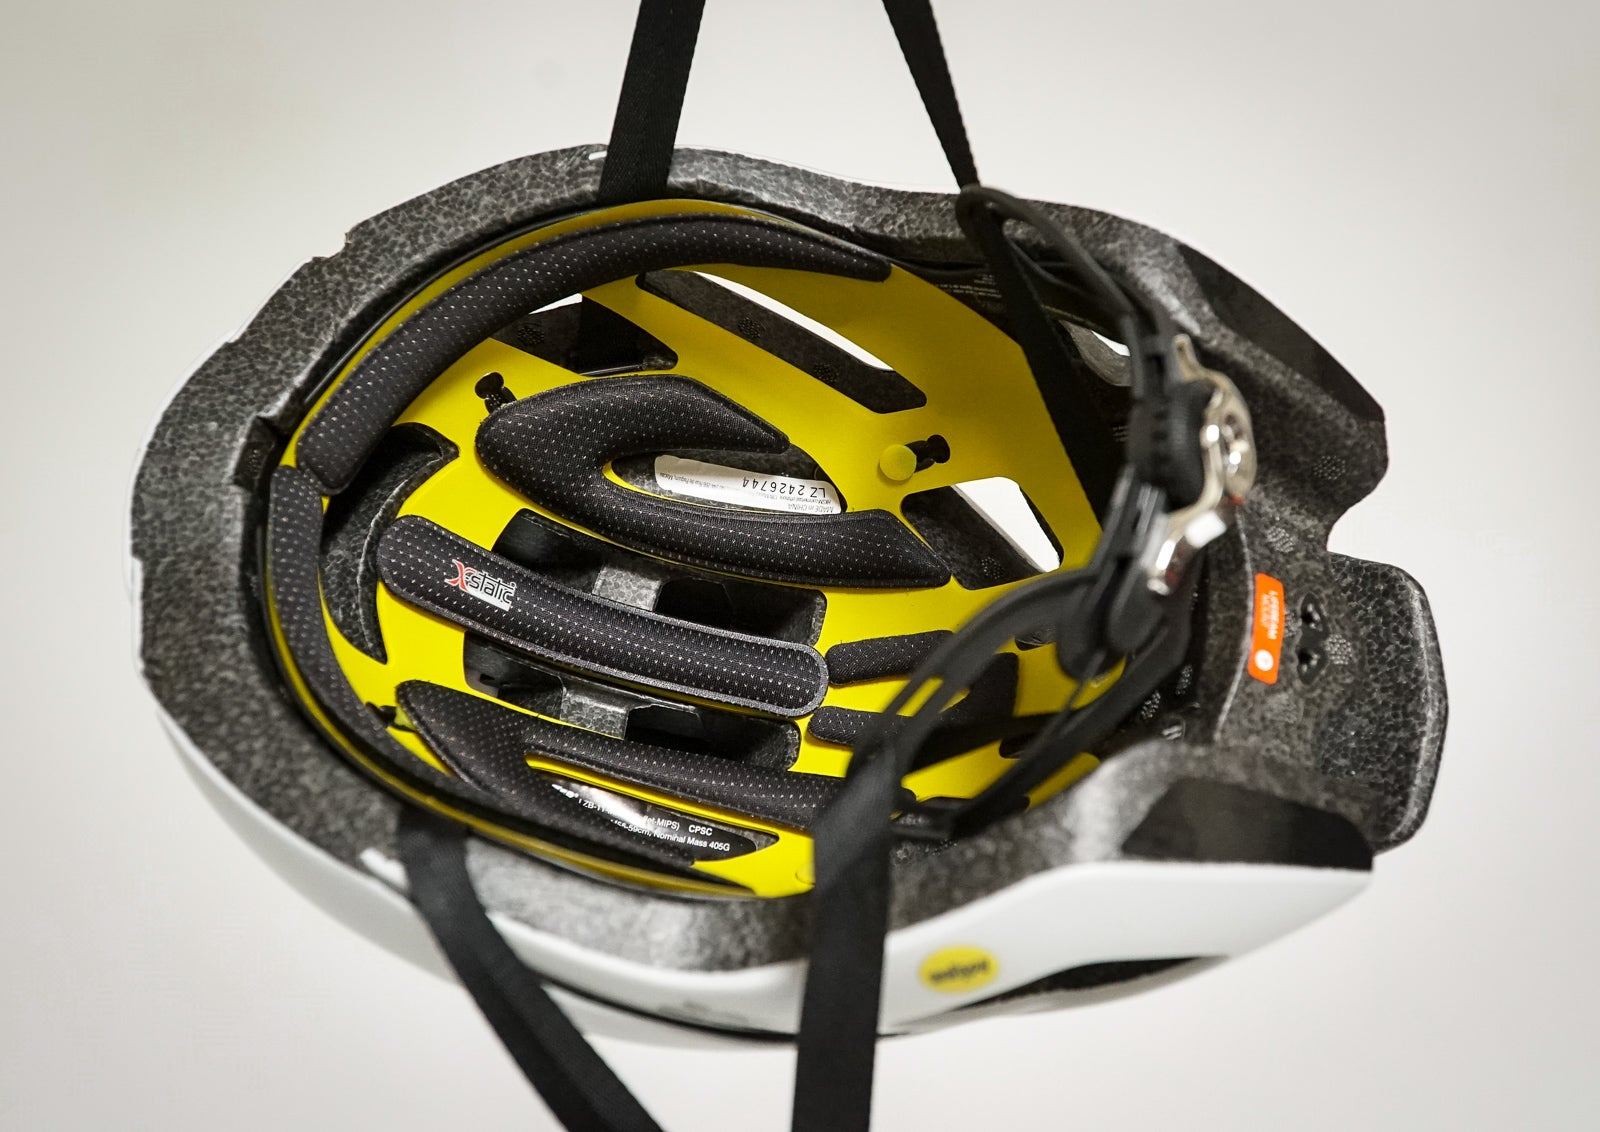 MIPS: The Reality Behind Making Helmets 'Safer' - Peloton Magazine